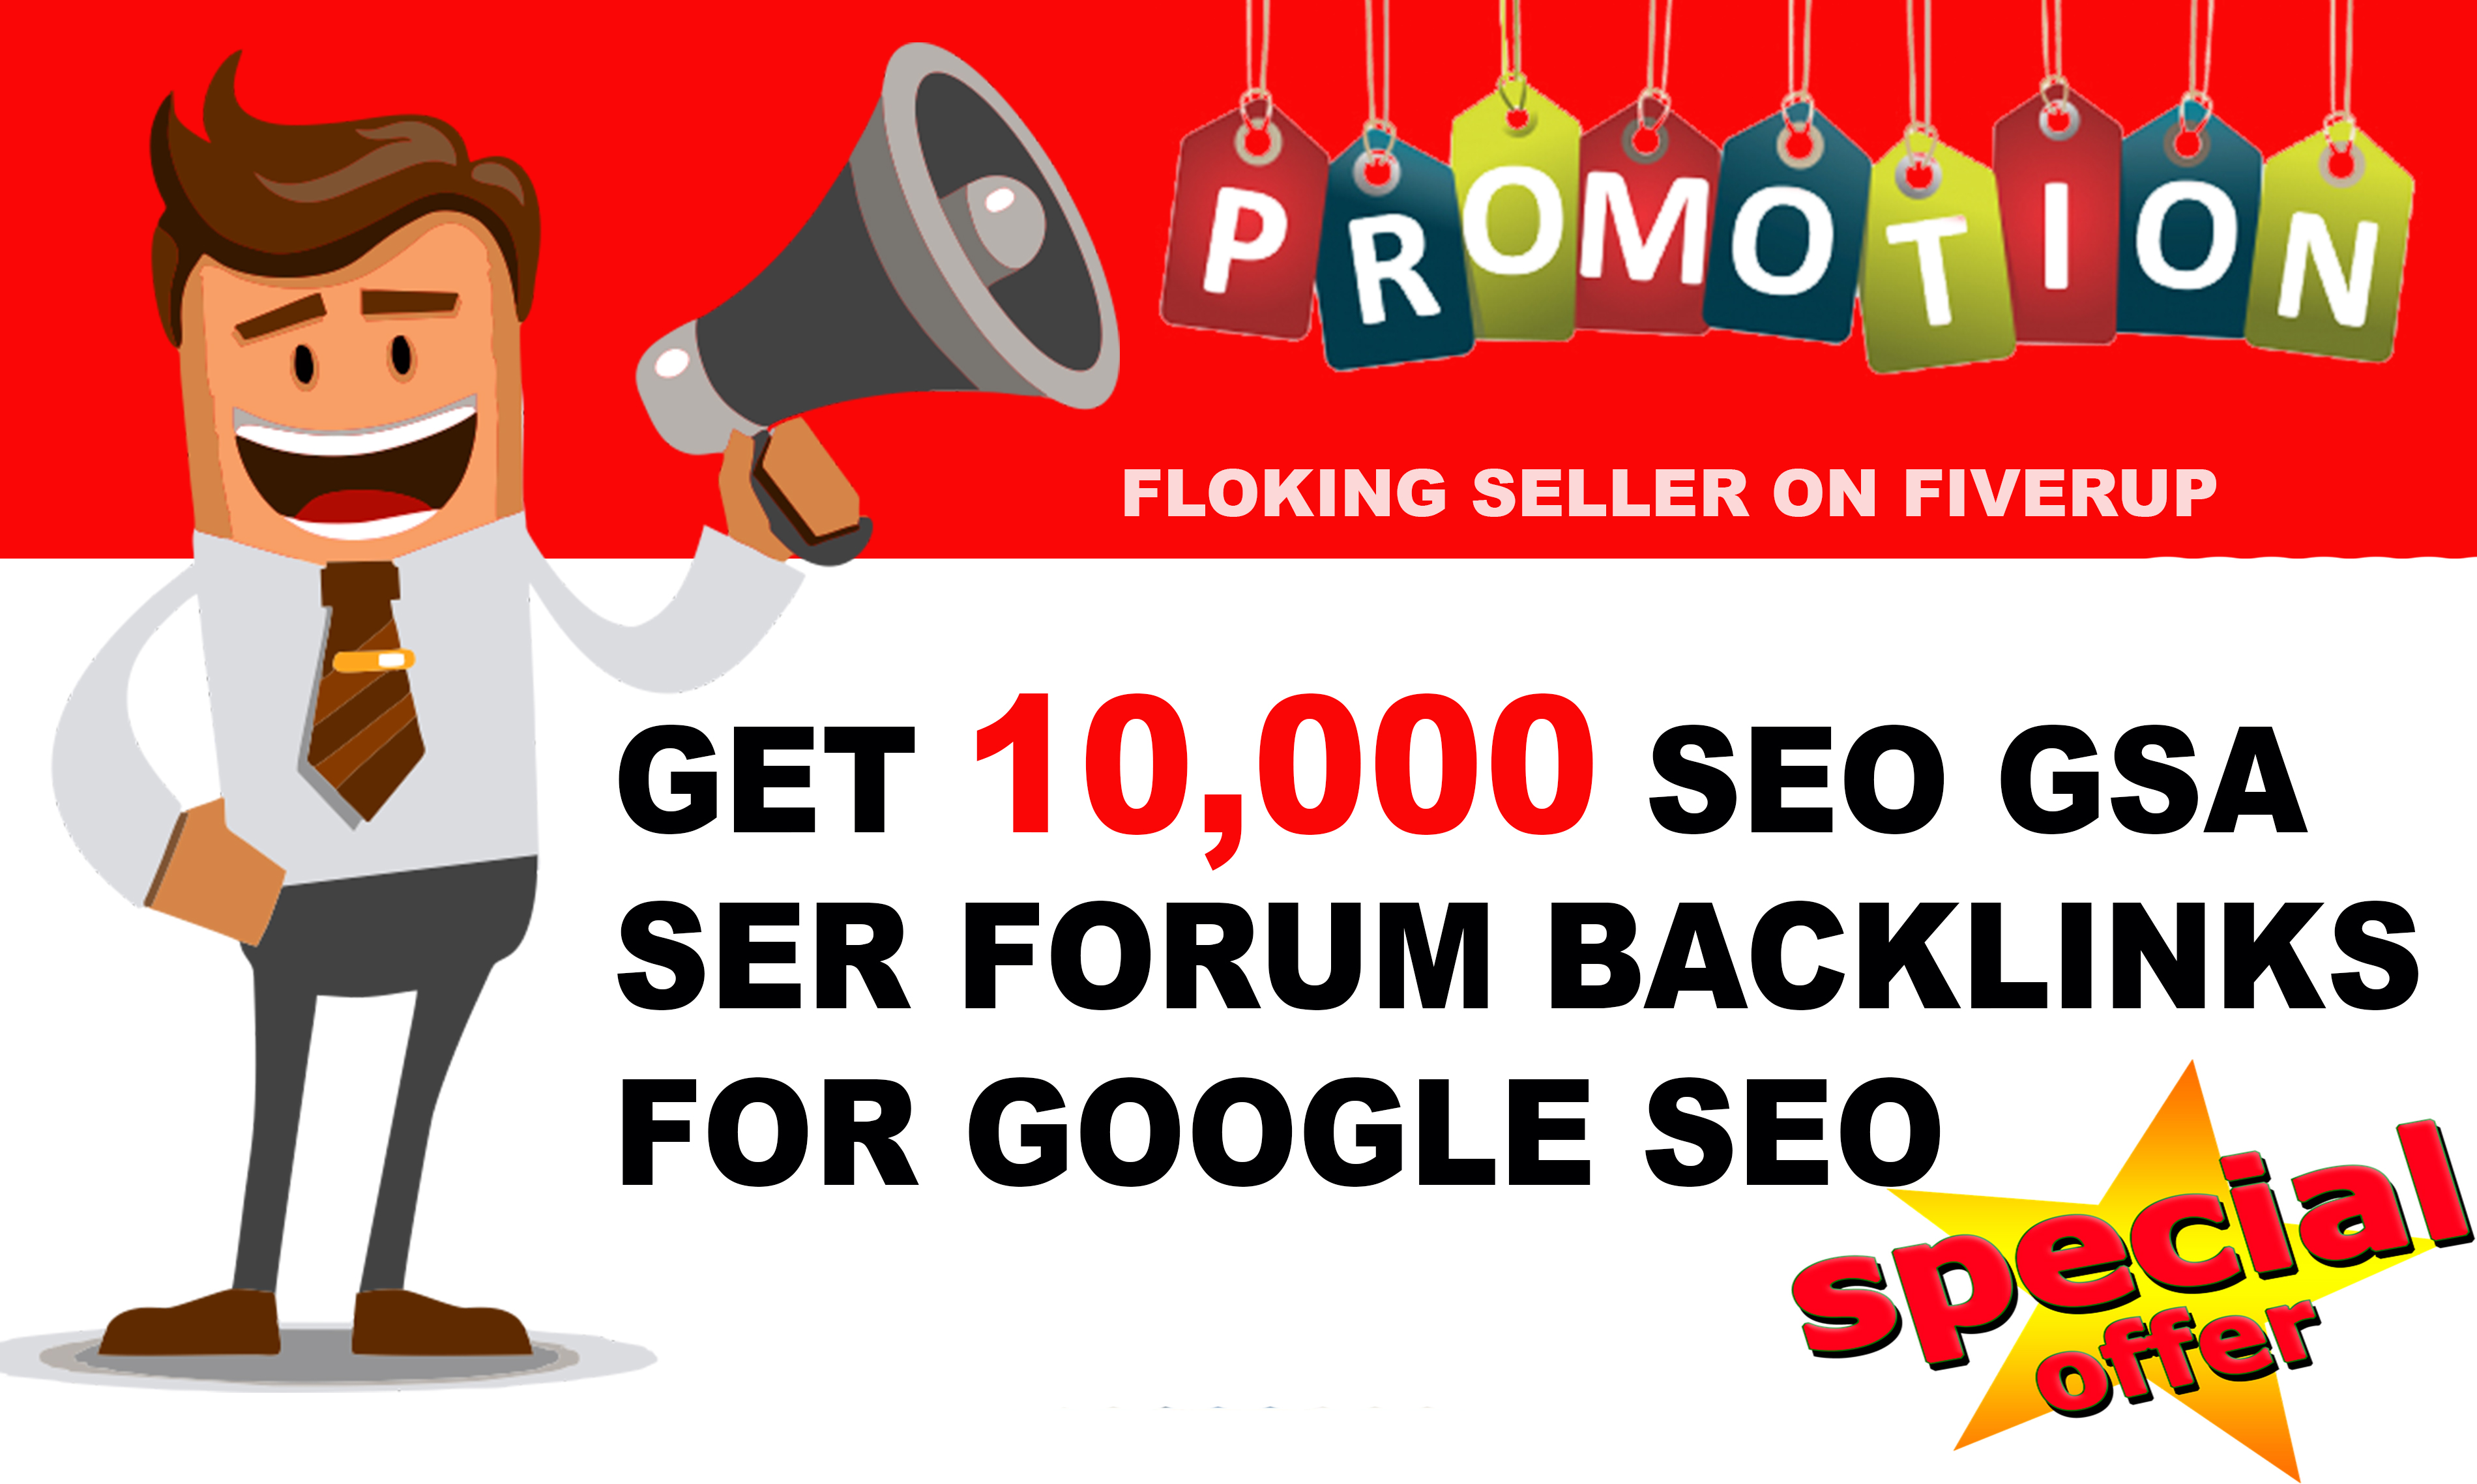 I Will Provide You 10,000 Forum Backlinks for your Blog or website SEO